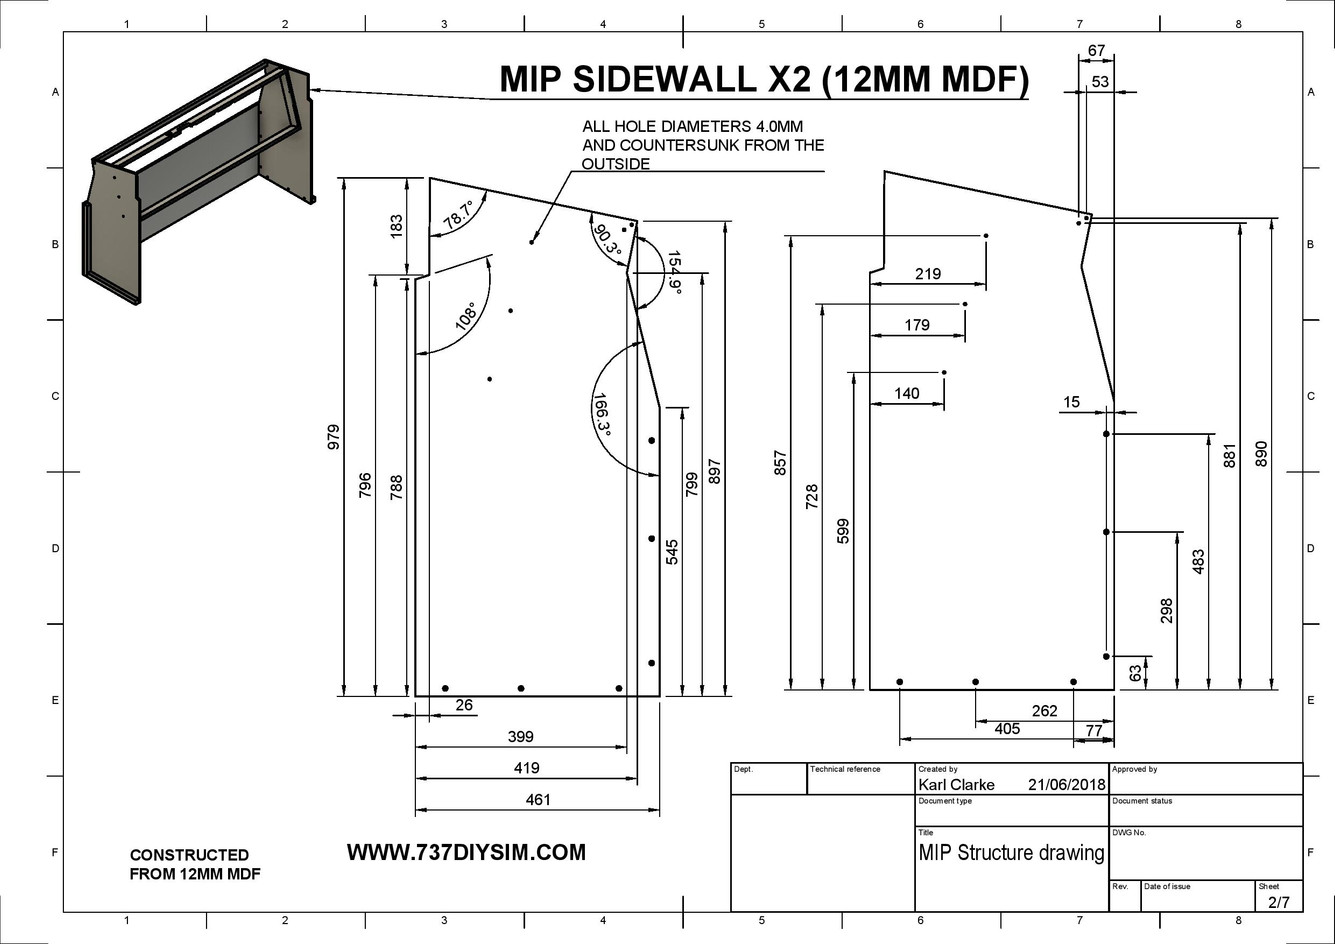 Boeing 737 MIP Structure Dimensions